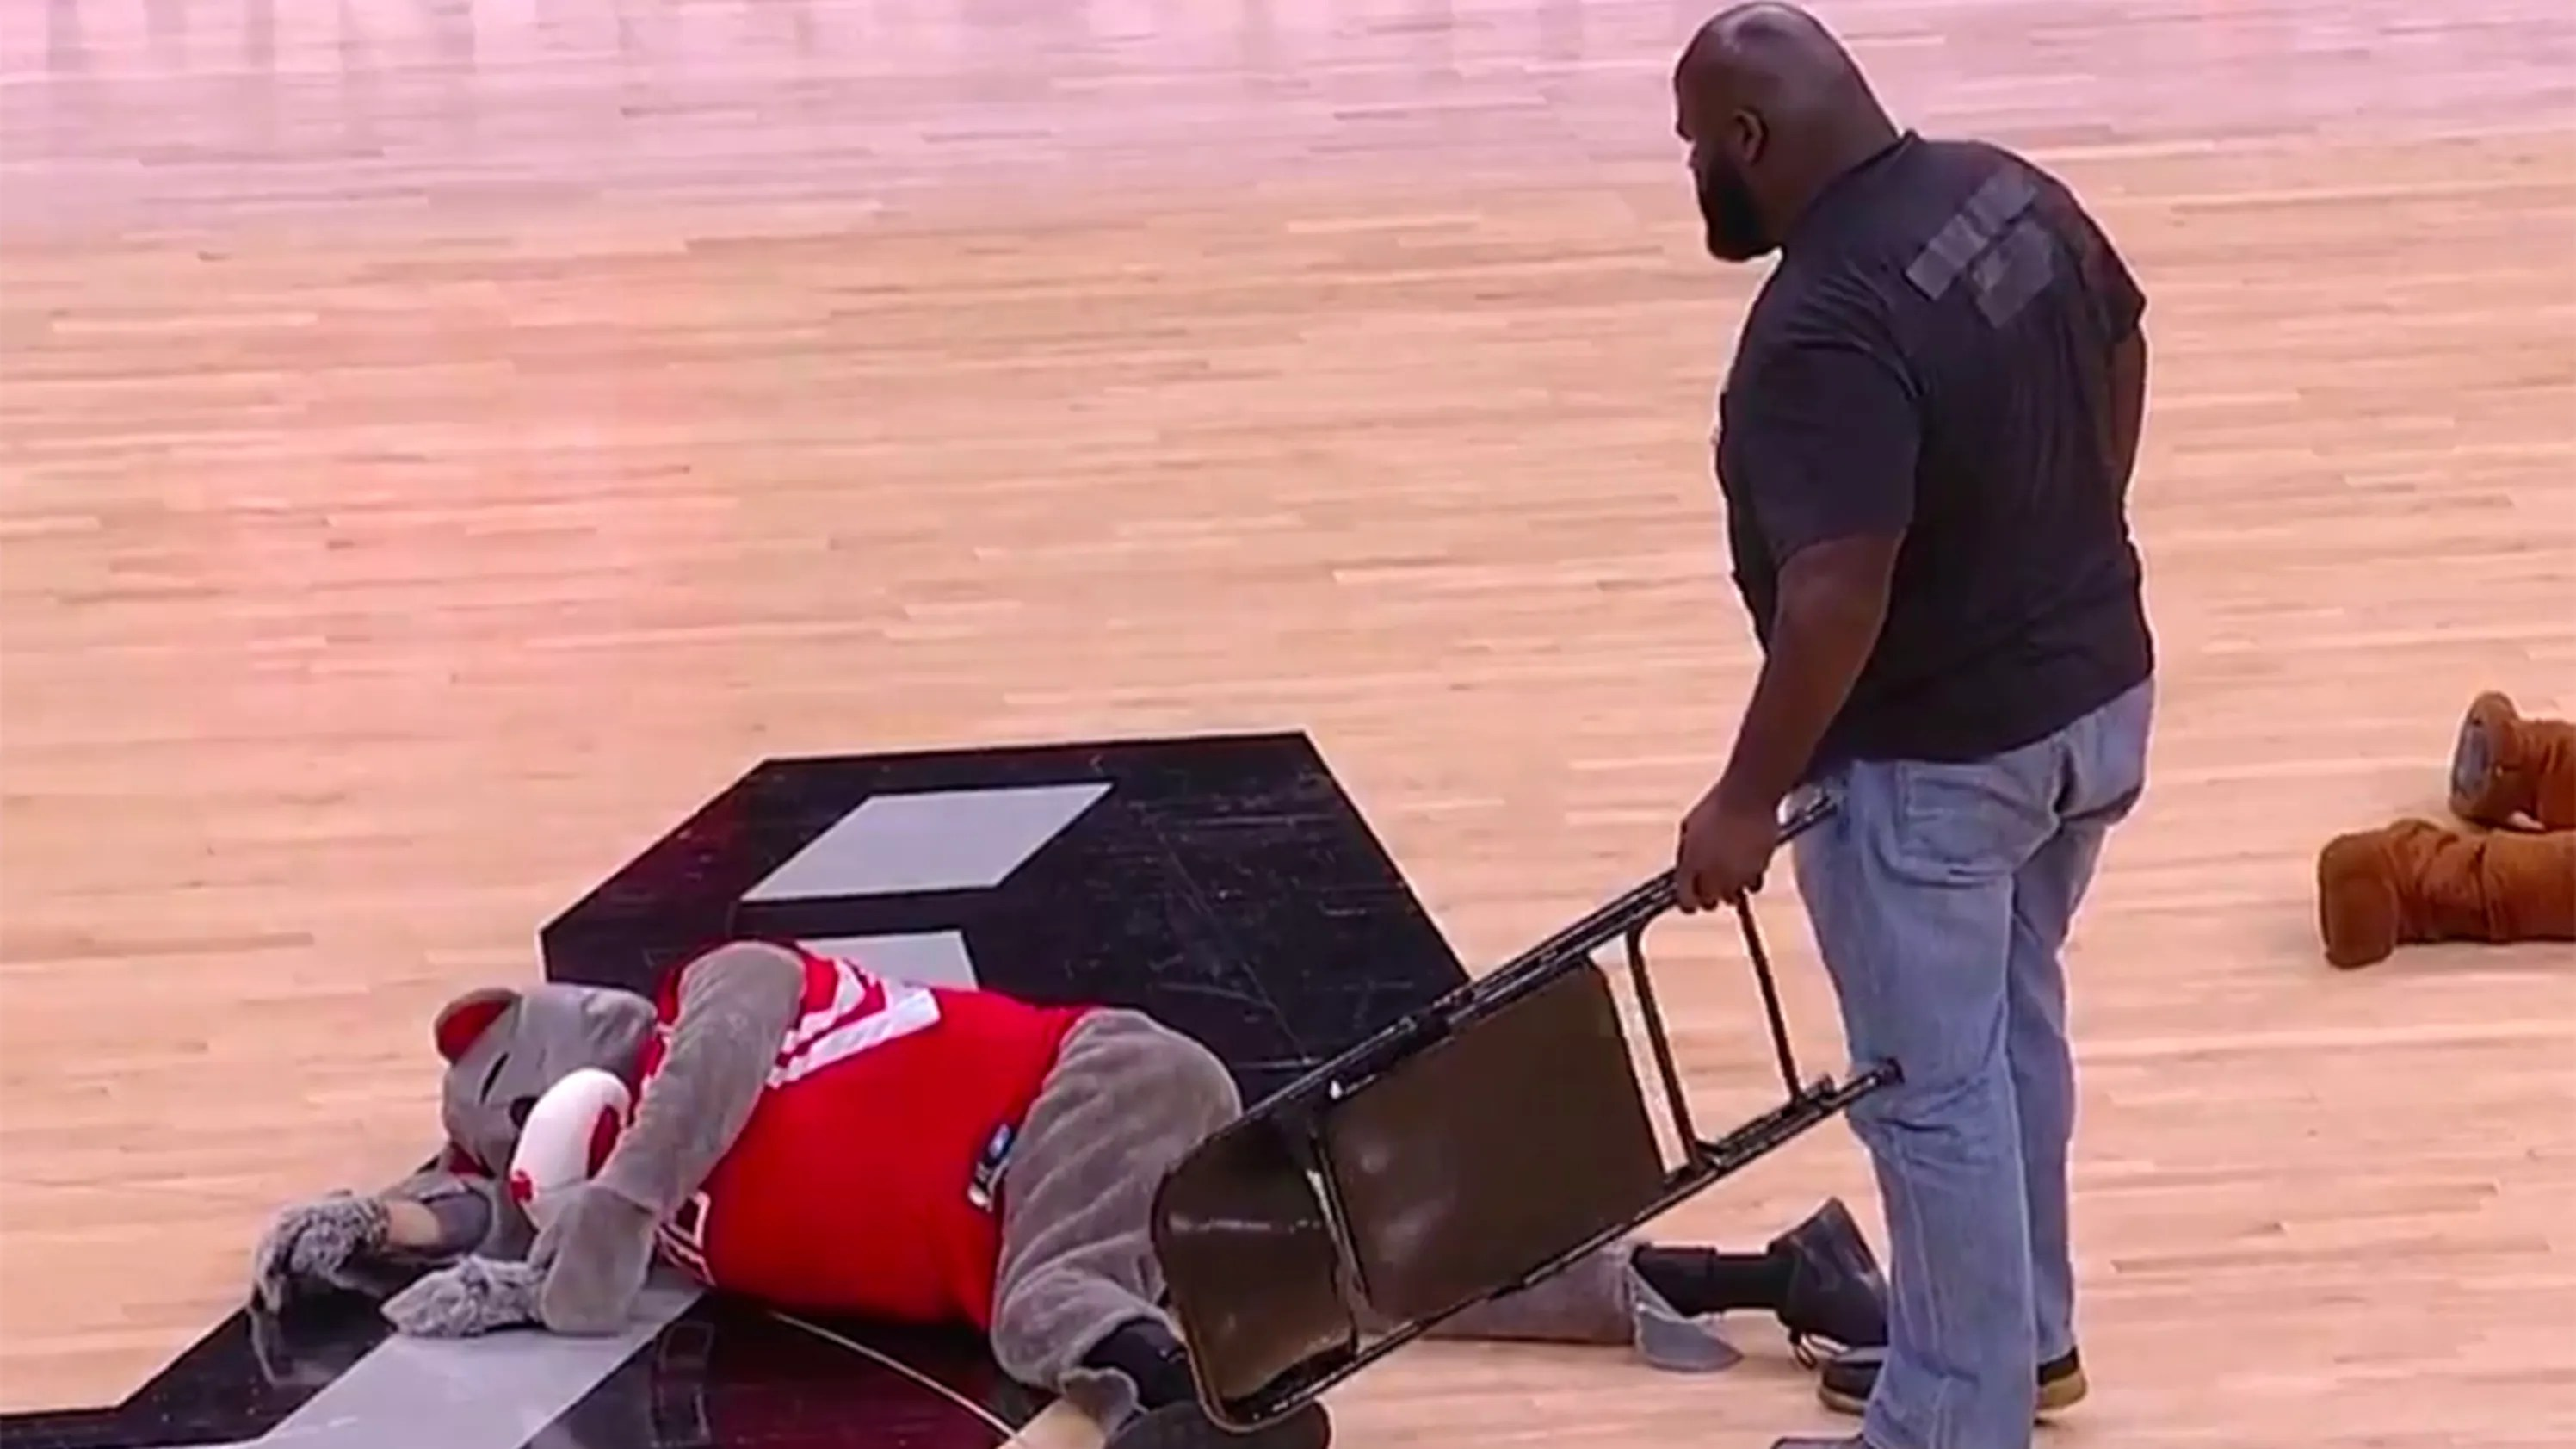 steel chair used in wwe belmont dental chairs prices mark henry smashes rockets mascot with